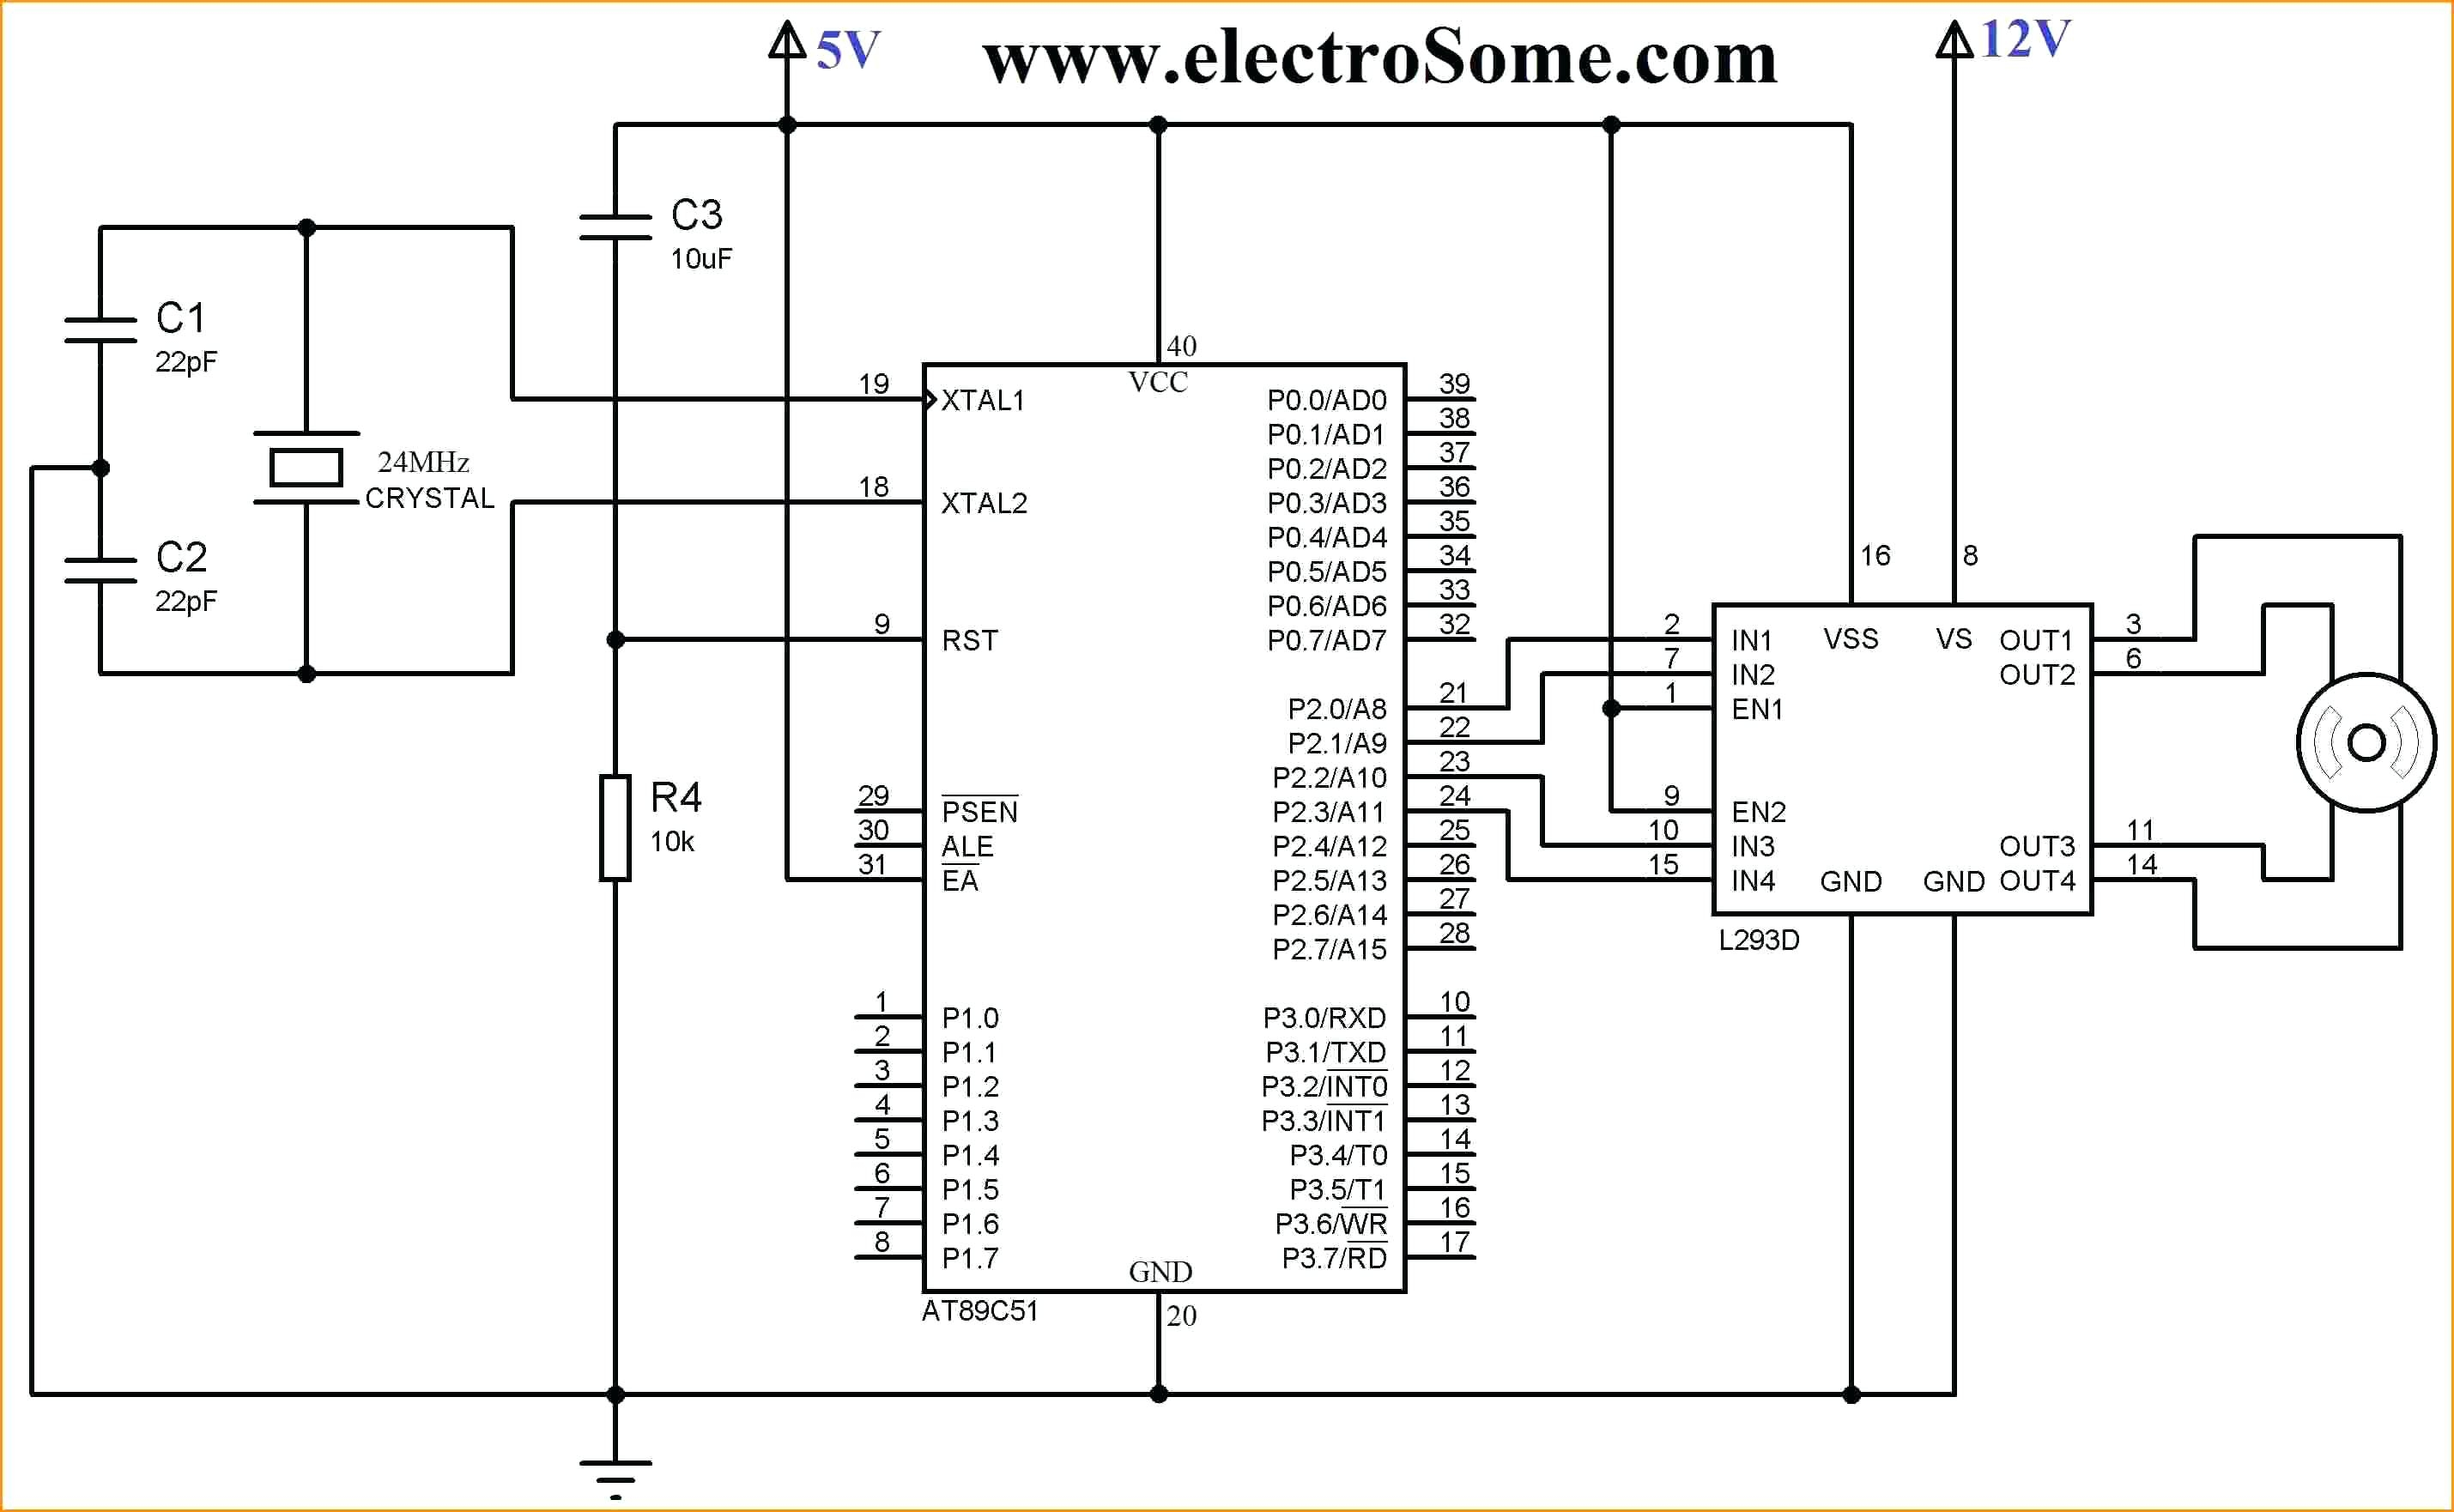 emerson wiring diagram for water pumps wiring diagramamtrol wiring diagram wiring diagramemerson wiring diagram for water pump temperature and levelsmall resolution of taco